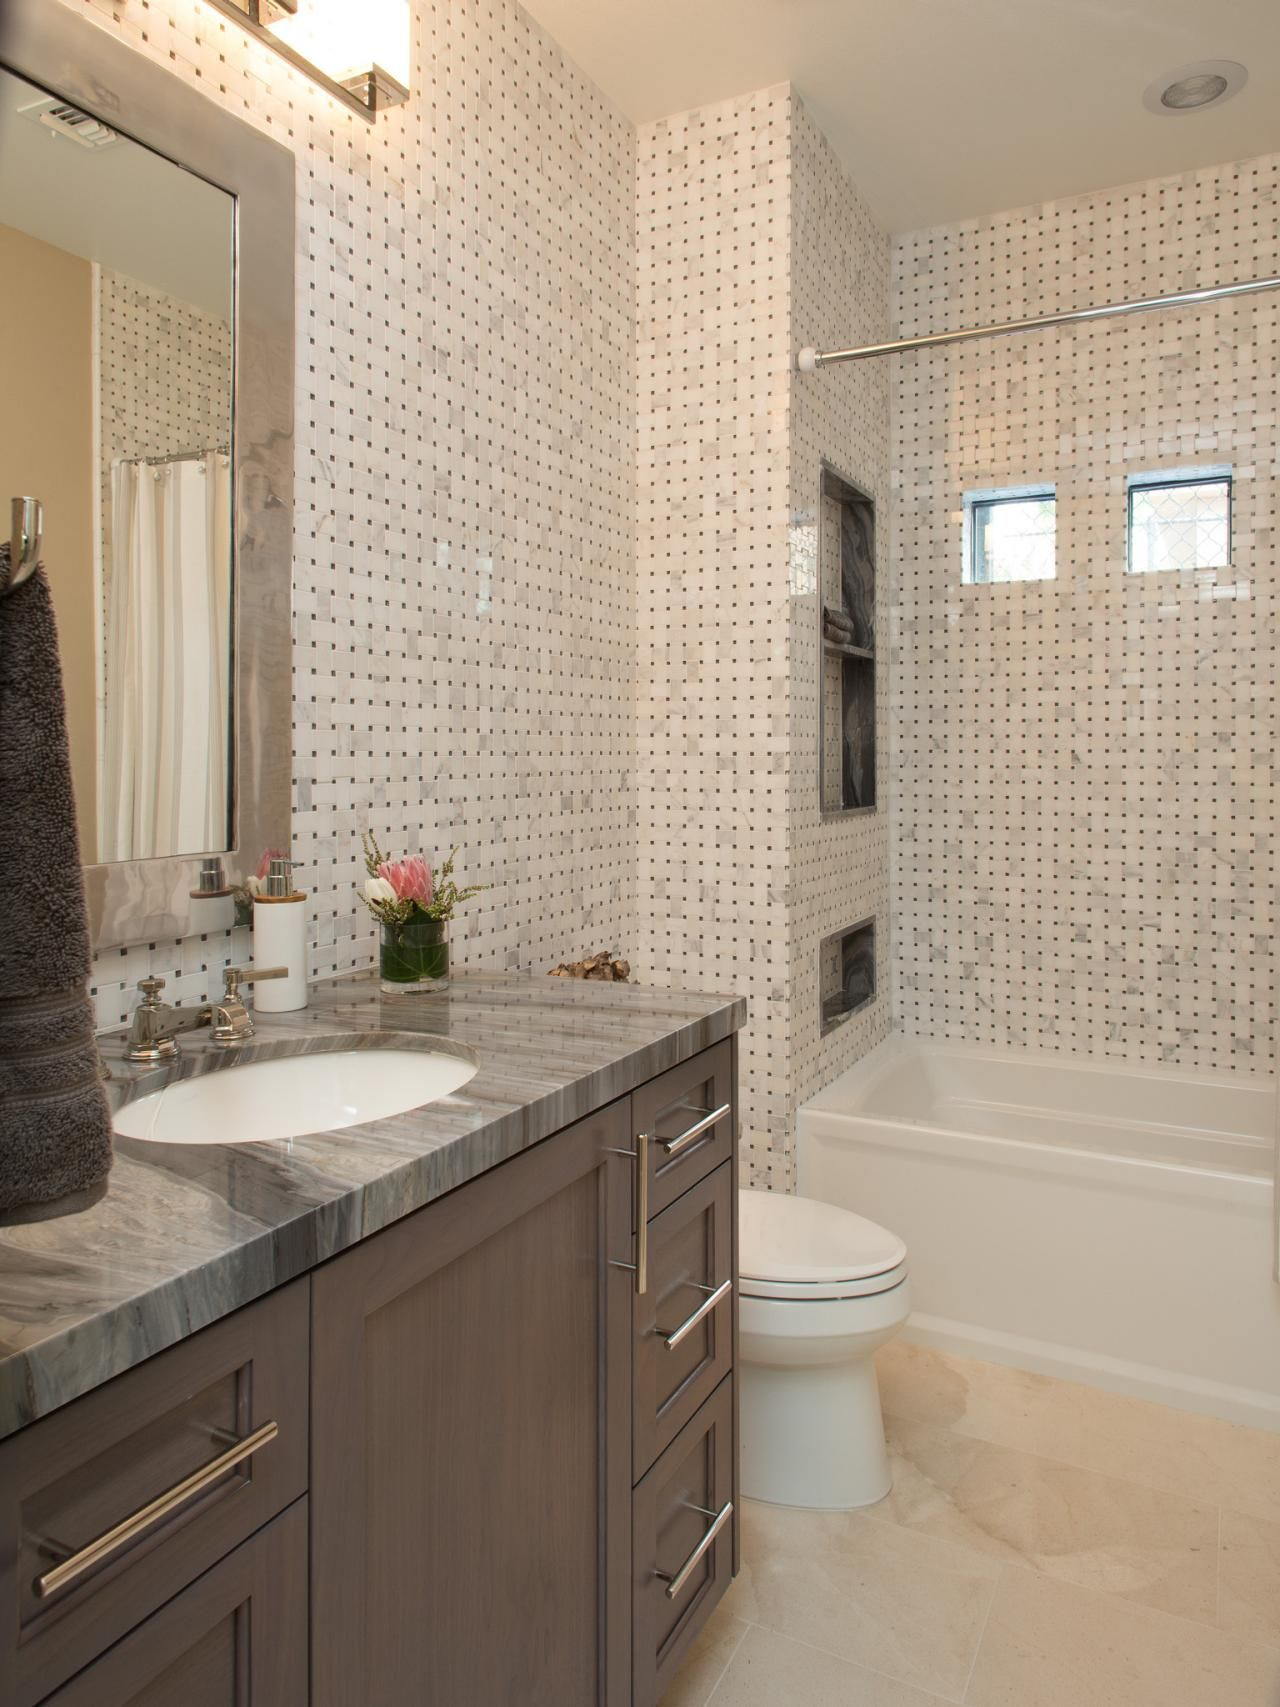 Sleek Tiled Bathroom With Gray Granite Countertops Property Brothers At Home Property Brothers Bathrooms Remodel